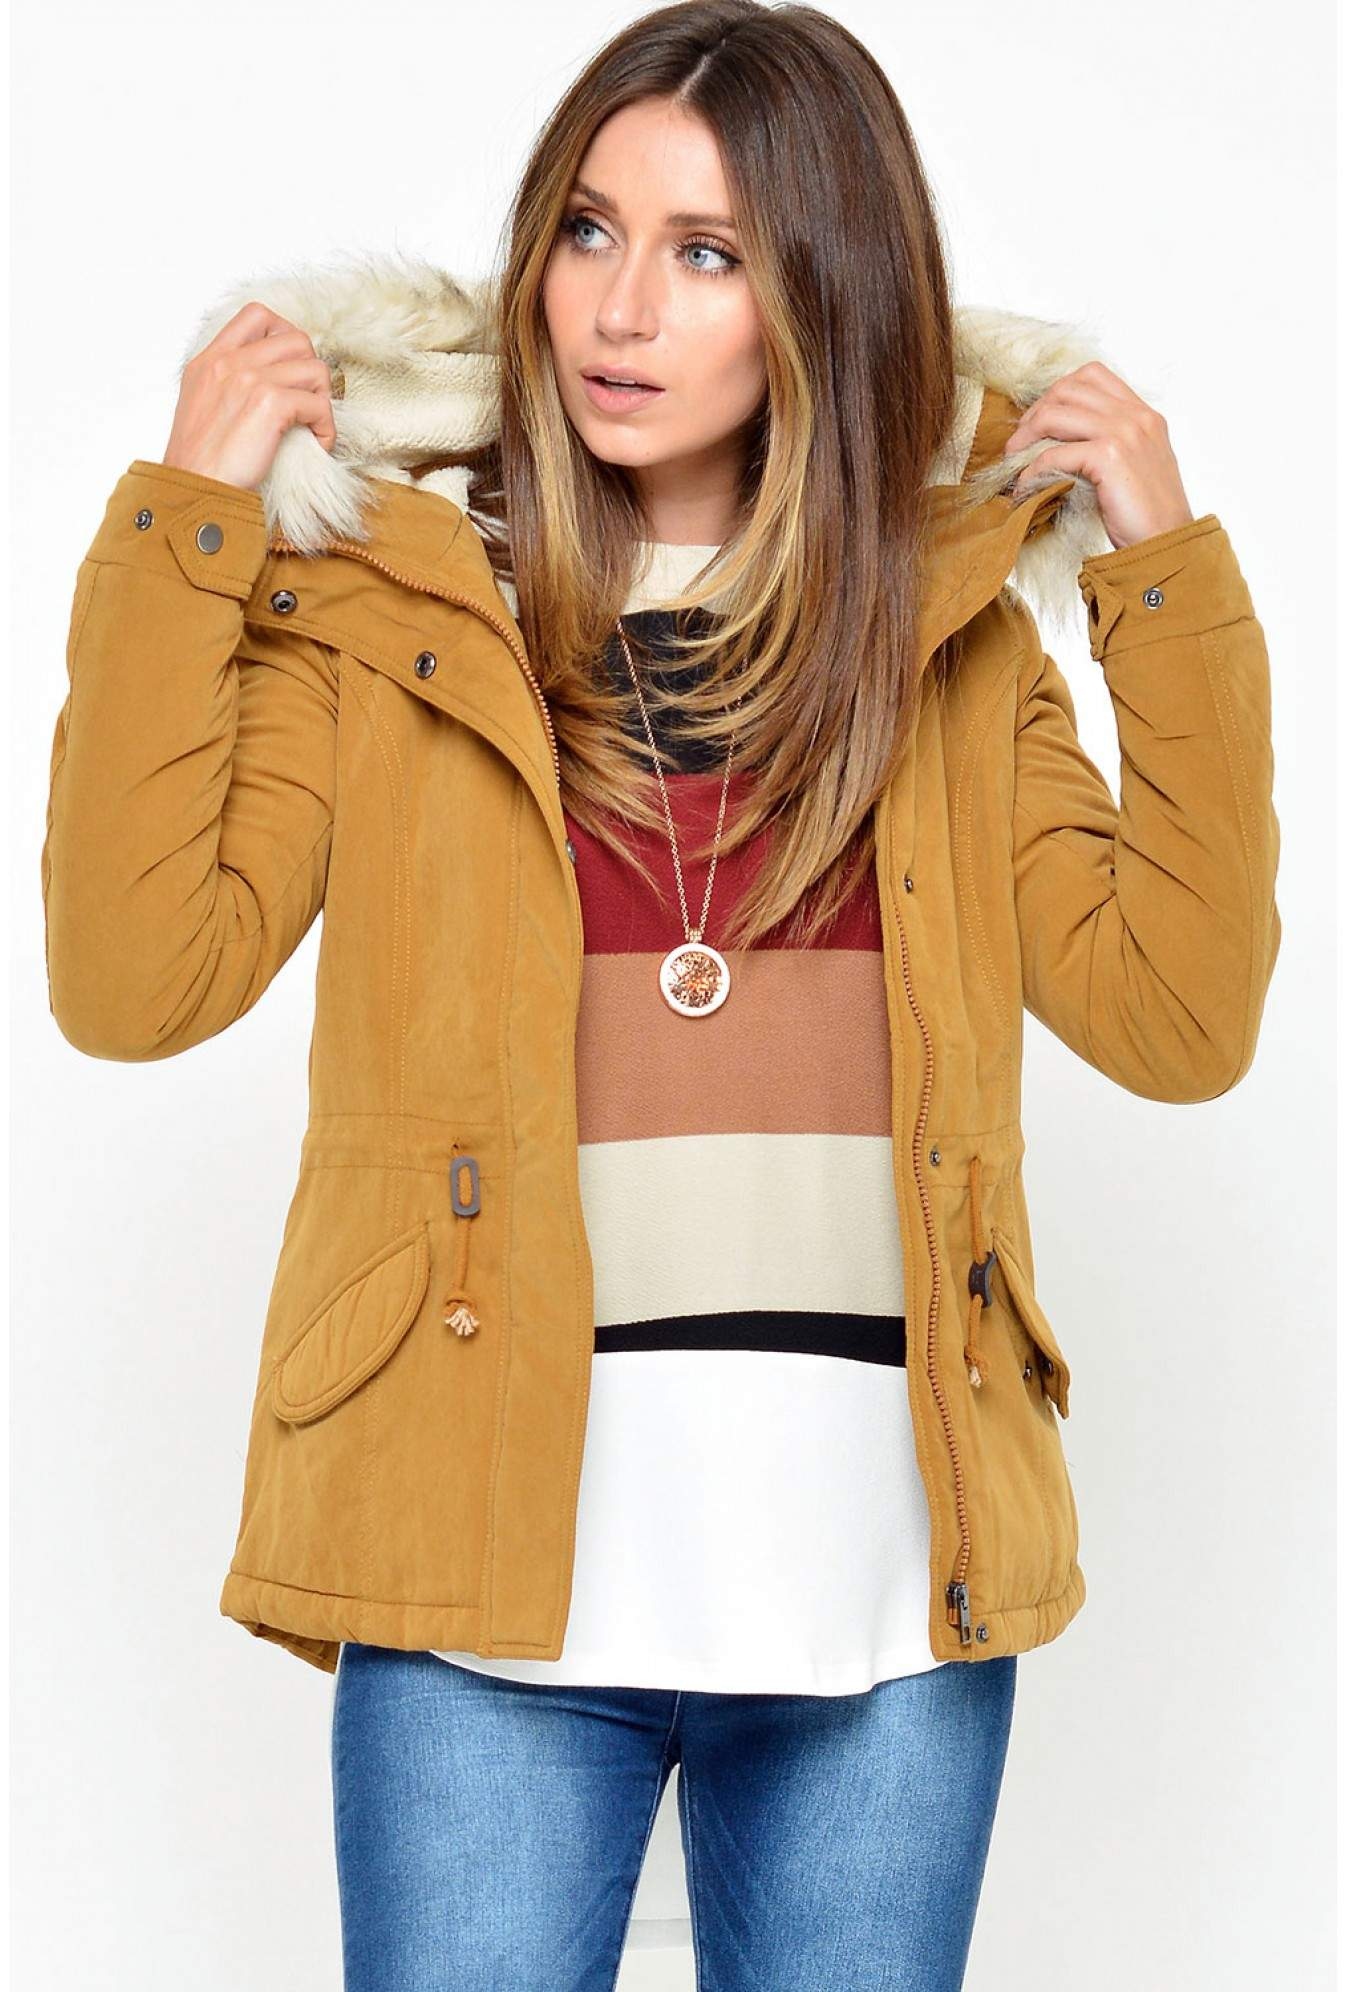 520580f68e701 Only Lucca Short Parka Jacket in Mustard